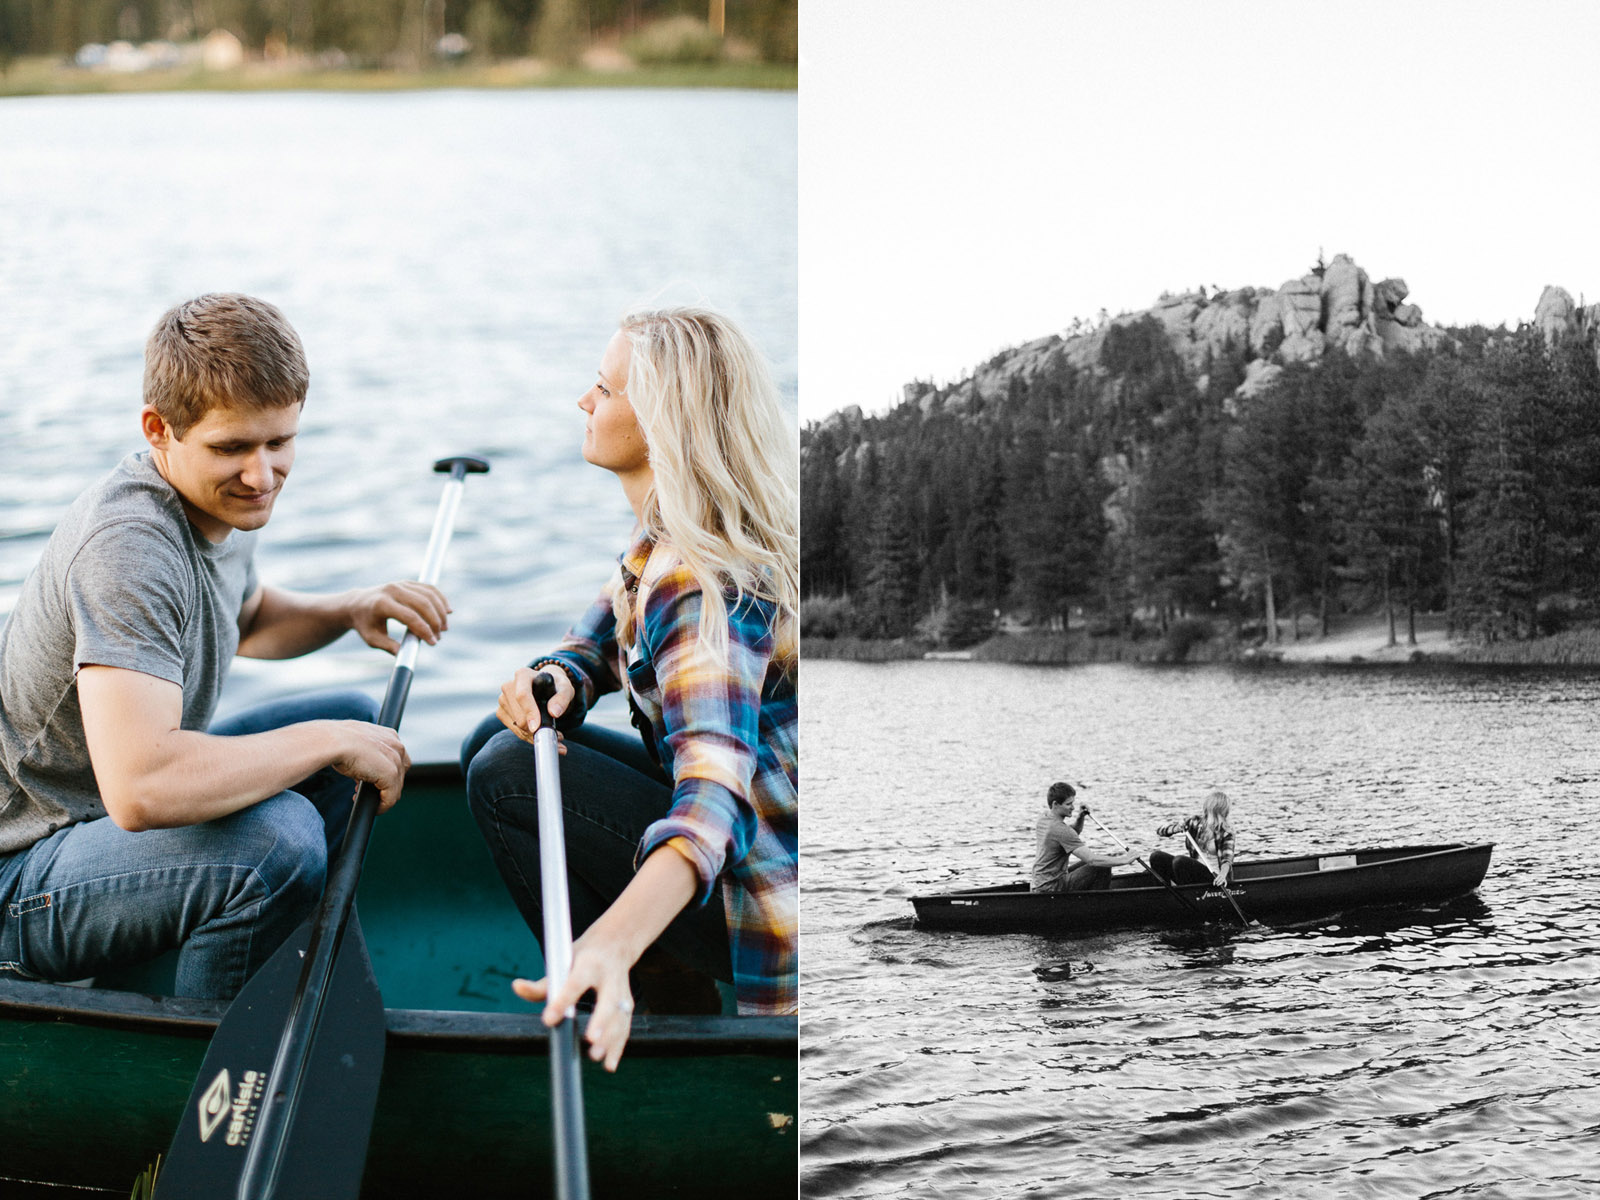 SiouxFalls_BlackHills_Adventure_Engagement_Wedding_Photographer_48.jpg